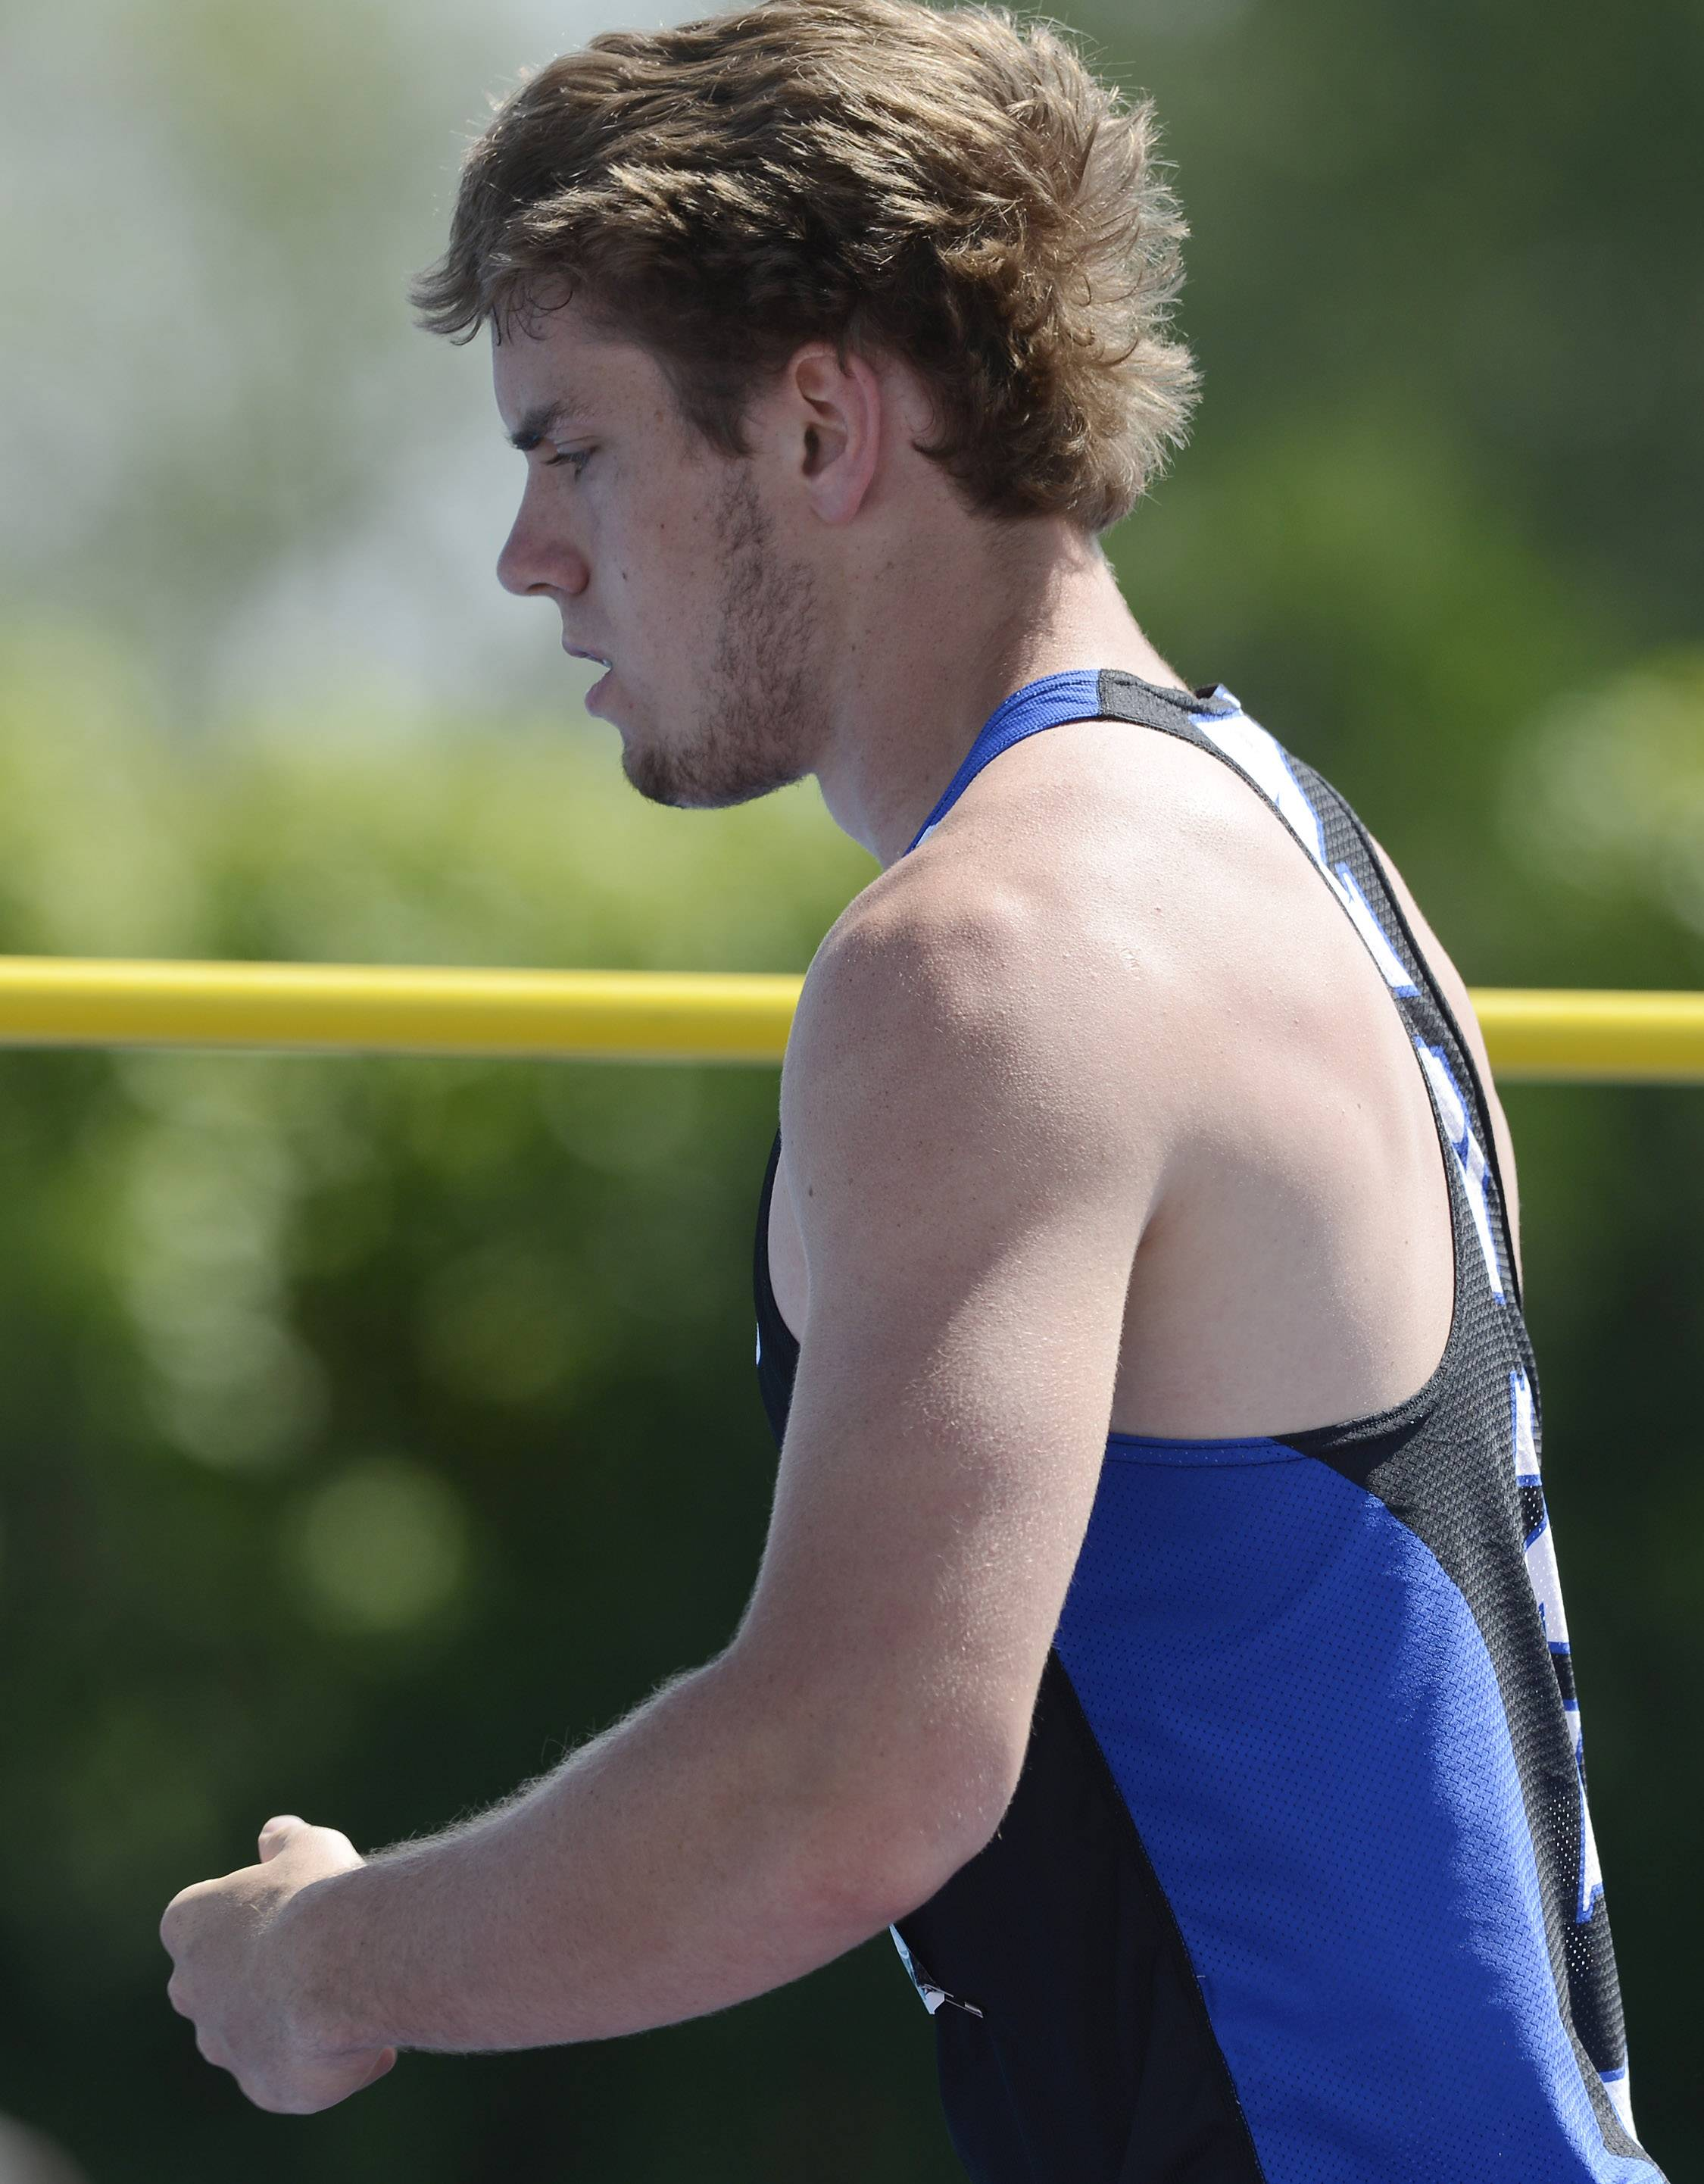 St. Charles North's Erik Miller pumps his fist as he becomes one of two competitors left in the high jump during the boys class 3A state track and field finals in Charleston Saturday. The event was won by Grant's Jonathan Wells.